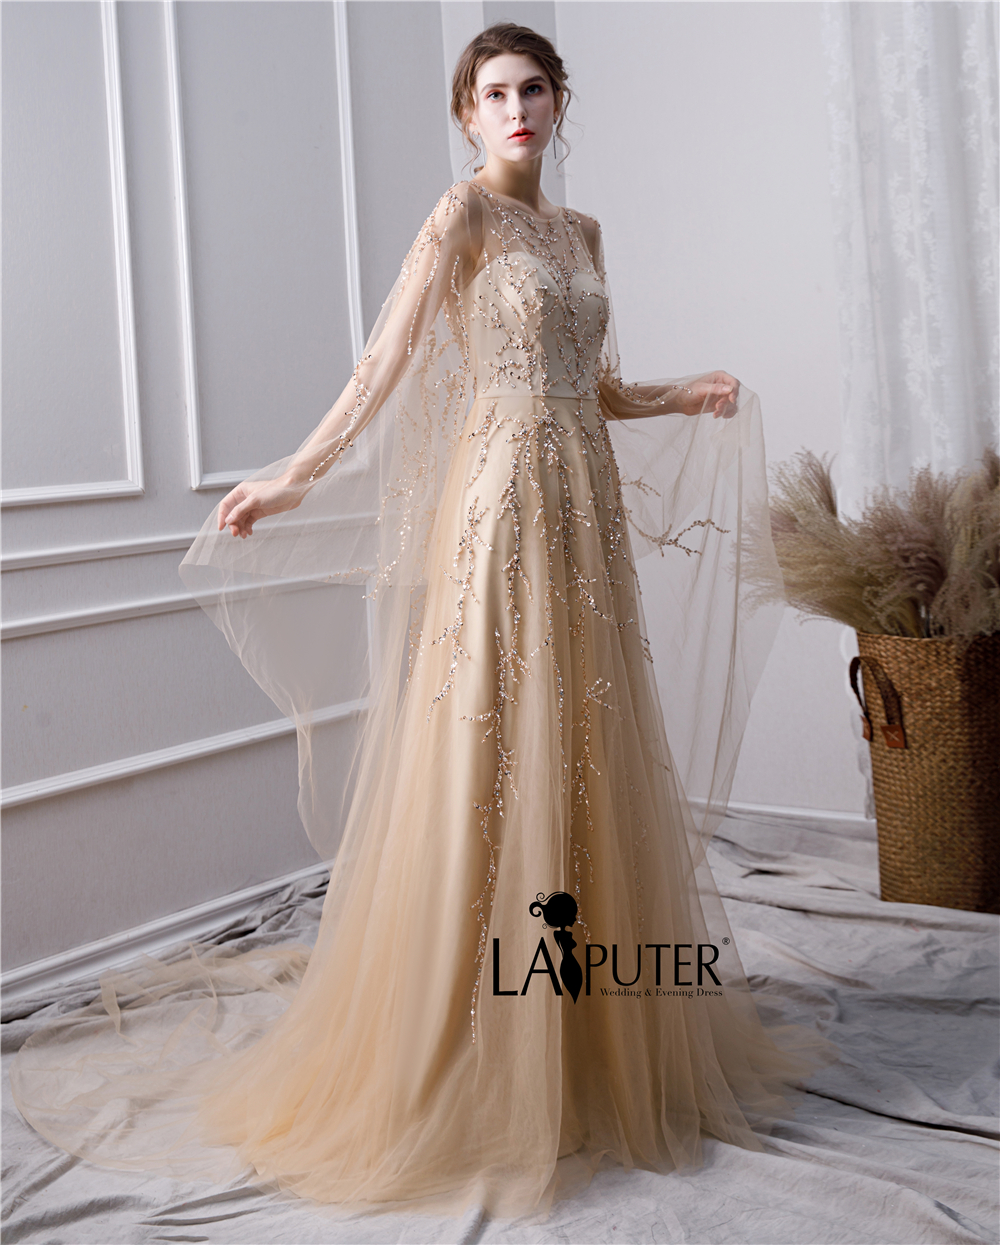 6ab0da1dbde0c Detail Feedback Questions about LAIPUTER 2019 New Evening Dresses ...